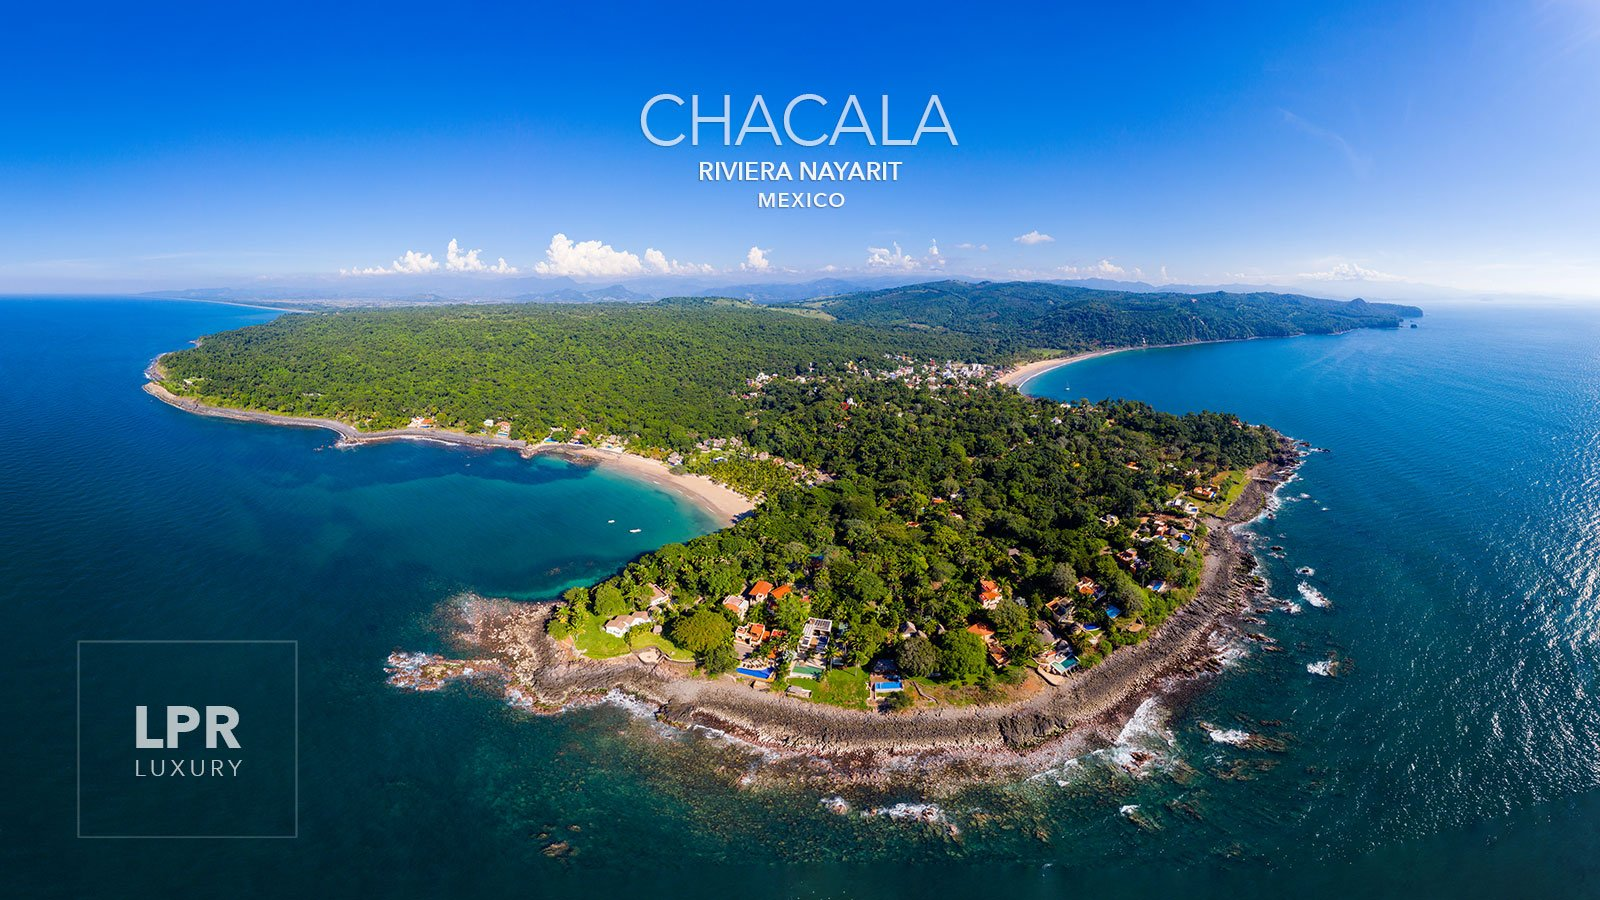 Chacala Riviera Nayarit - Mexico - Luxury real estate and vacation rentals